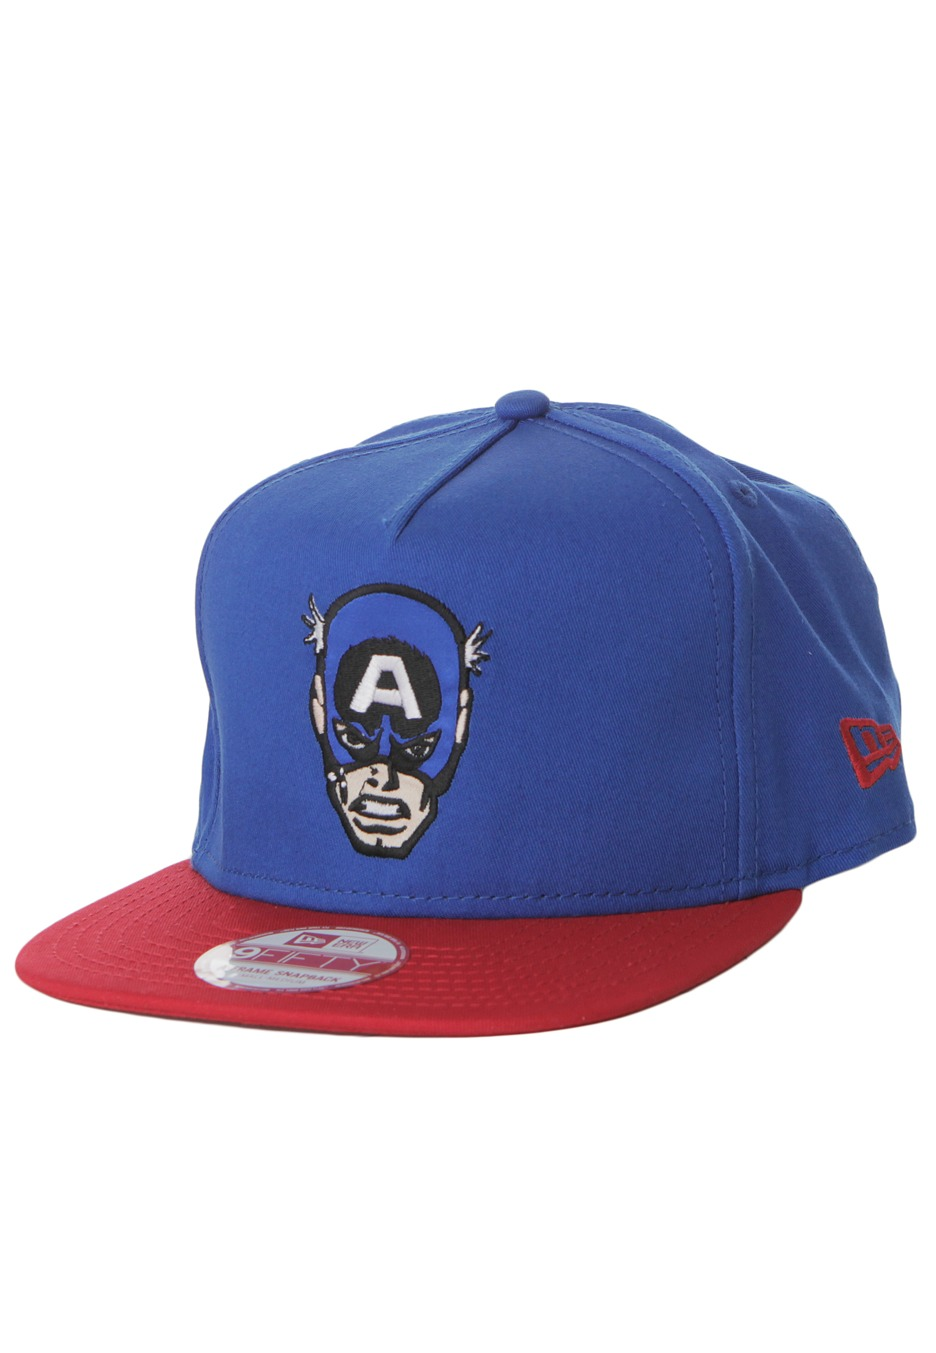 New Era - Hero Face Captain America Blue/Red Snapback - Cap - Impericon.com Worldwide